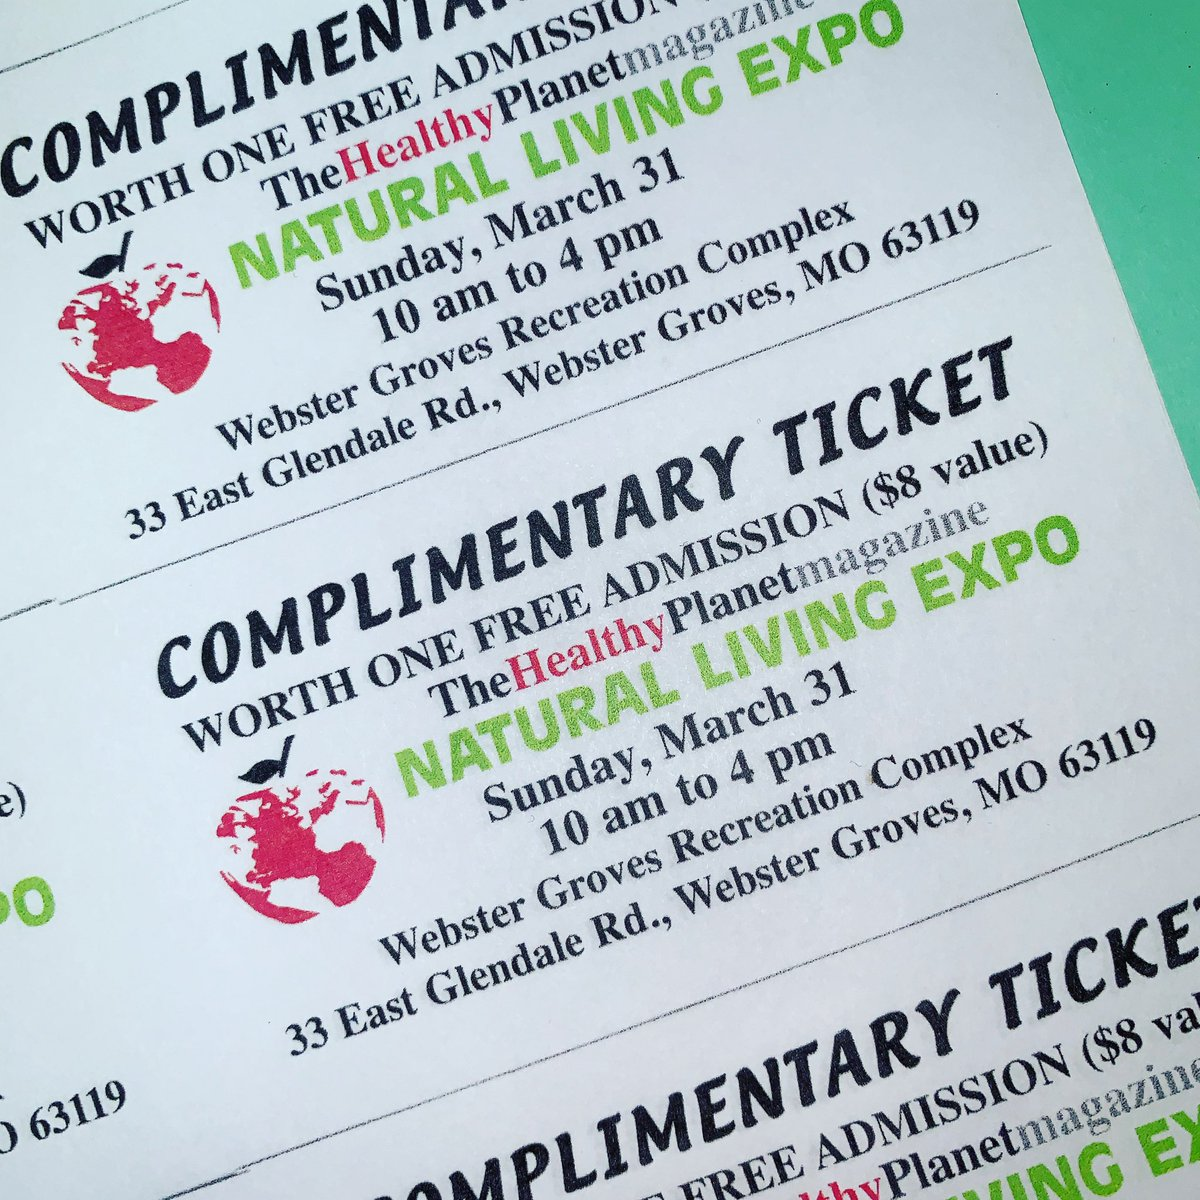 We will be at the Natural Living Expo on 3/31!  Free samples! Want free tickets?  Stop by to pick them up at 469 N Kirkwood Rd, 63122 or call 314-965-0660 & we can email them to you! Mirage@miragespa.com #healthyplanet #healthyplanetexpo #naturallivingexpo #cbd #purecannaceutical